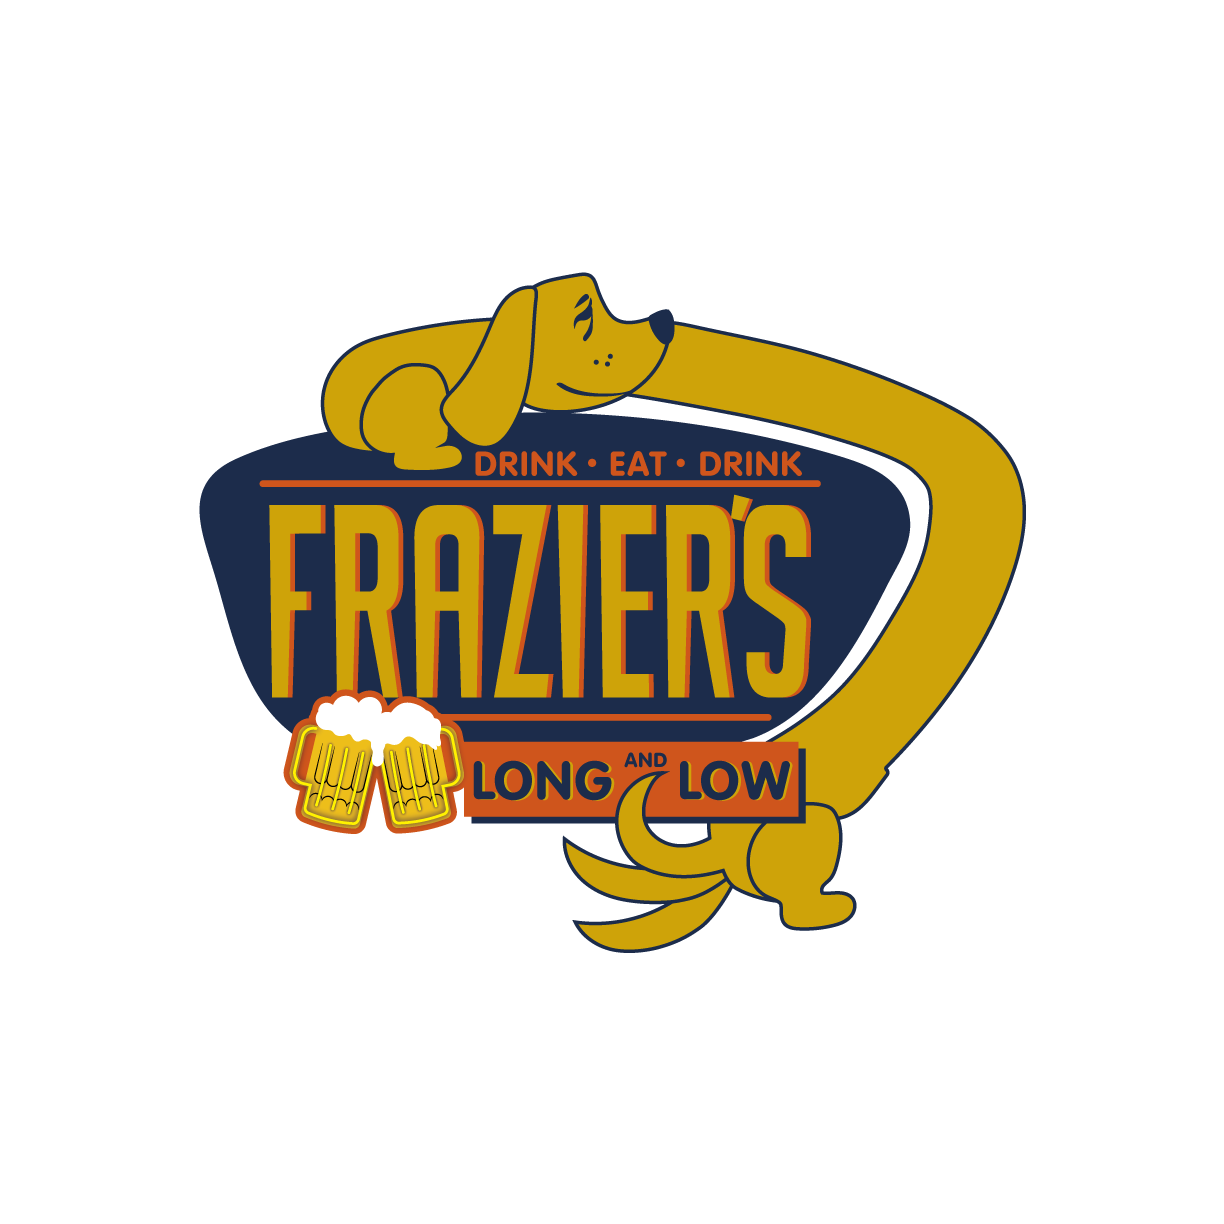 Frazier's Long and Low